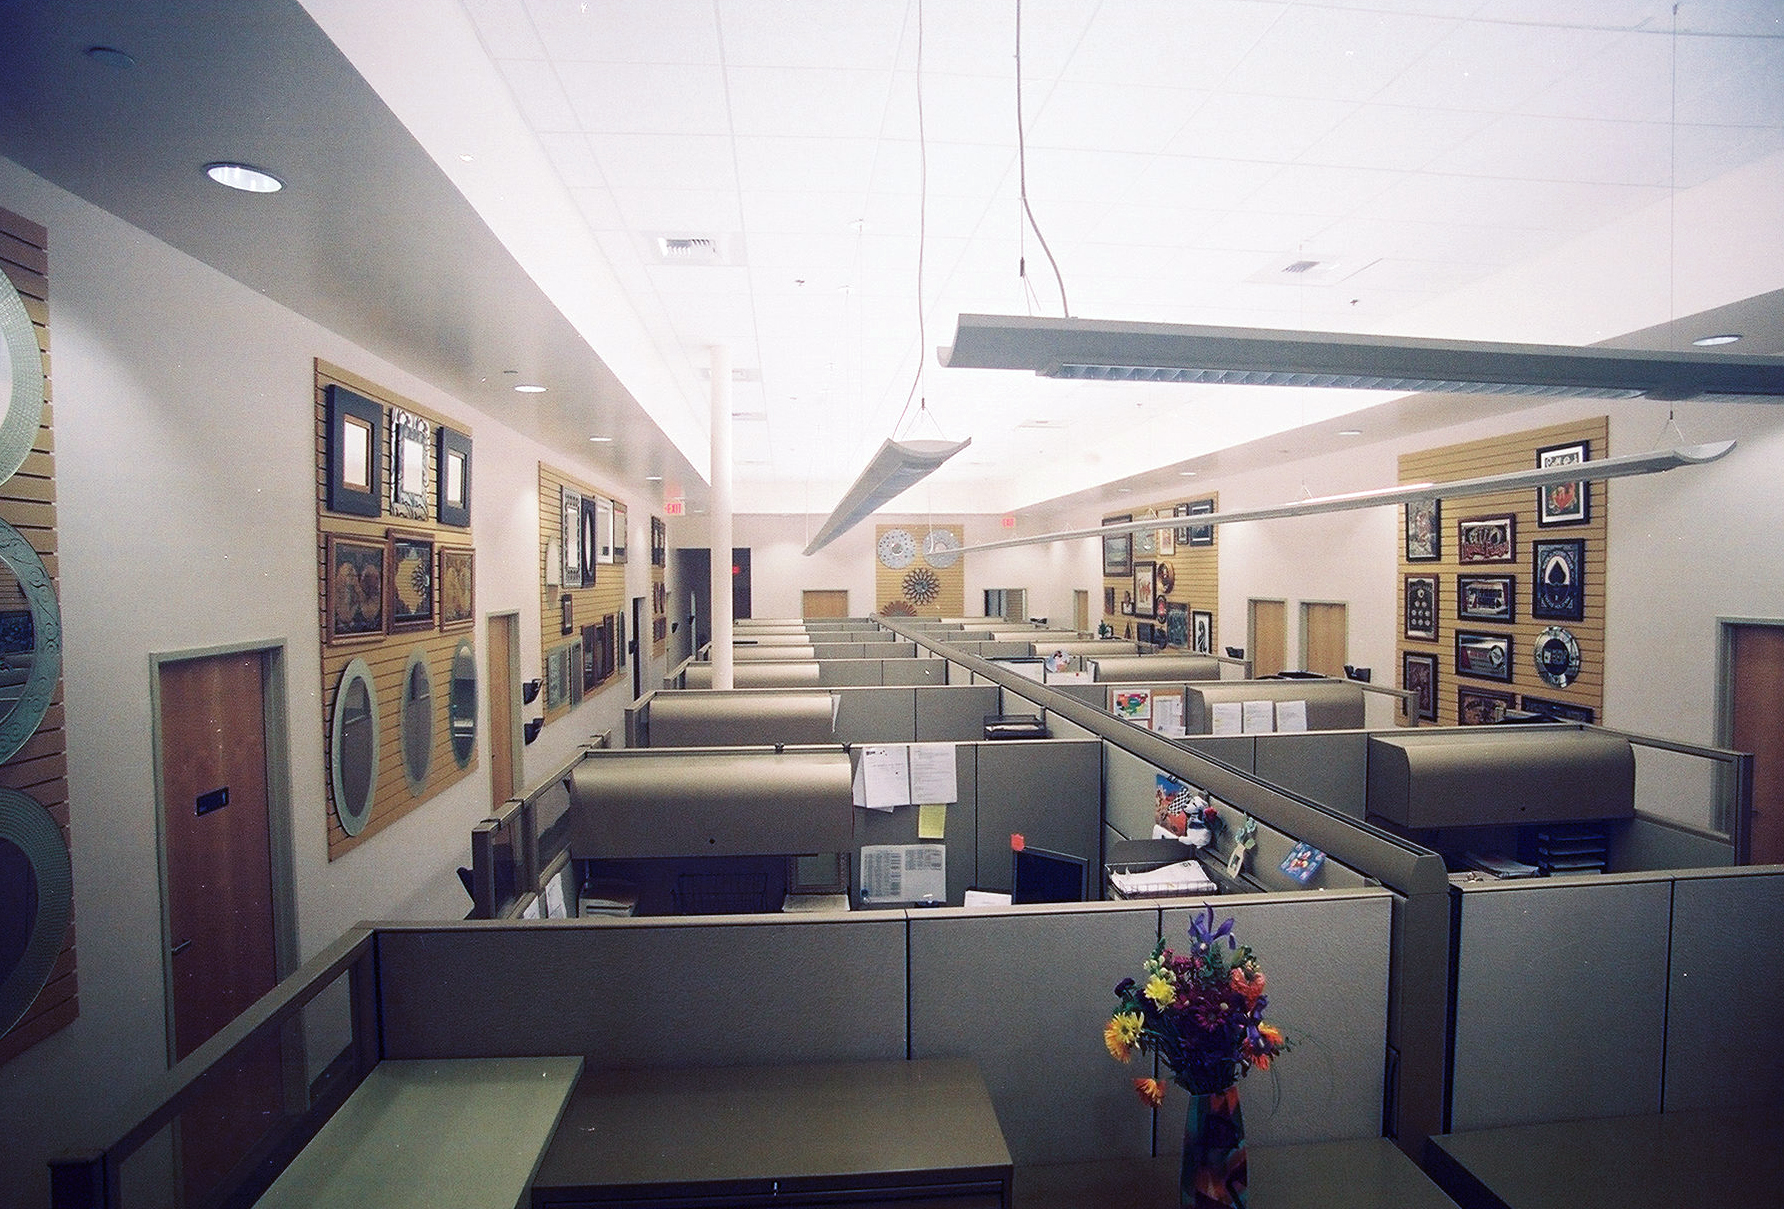 Back in the day when cubicles were the standard, we sourced these preowned Herman Miller systems furniture, keeping within the client's budget.